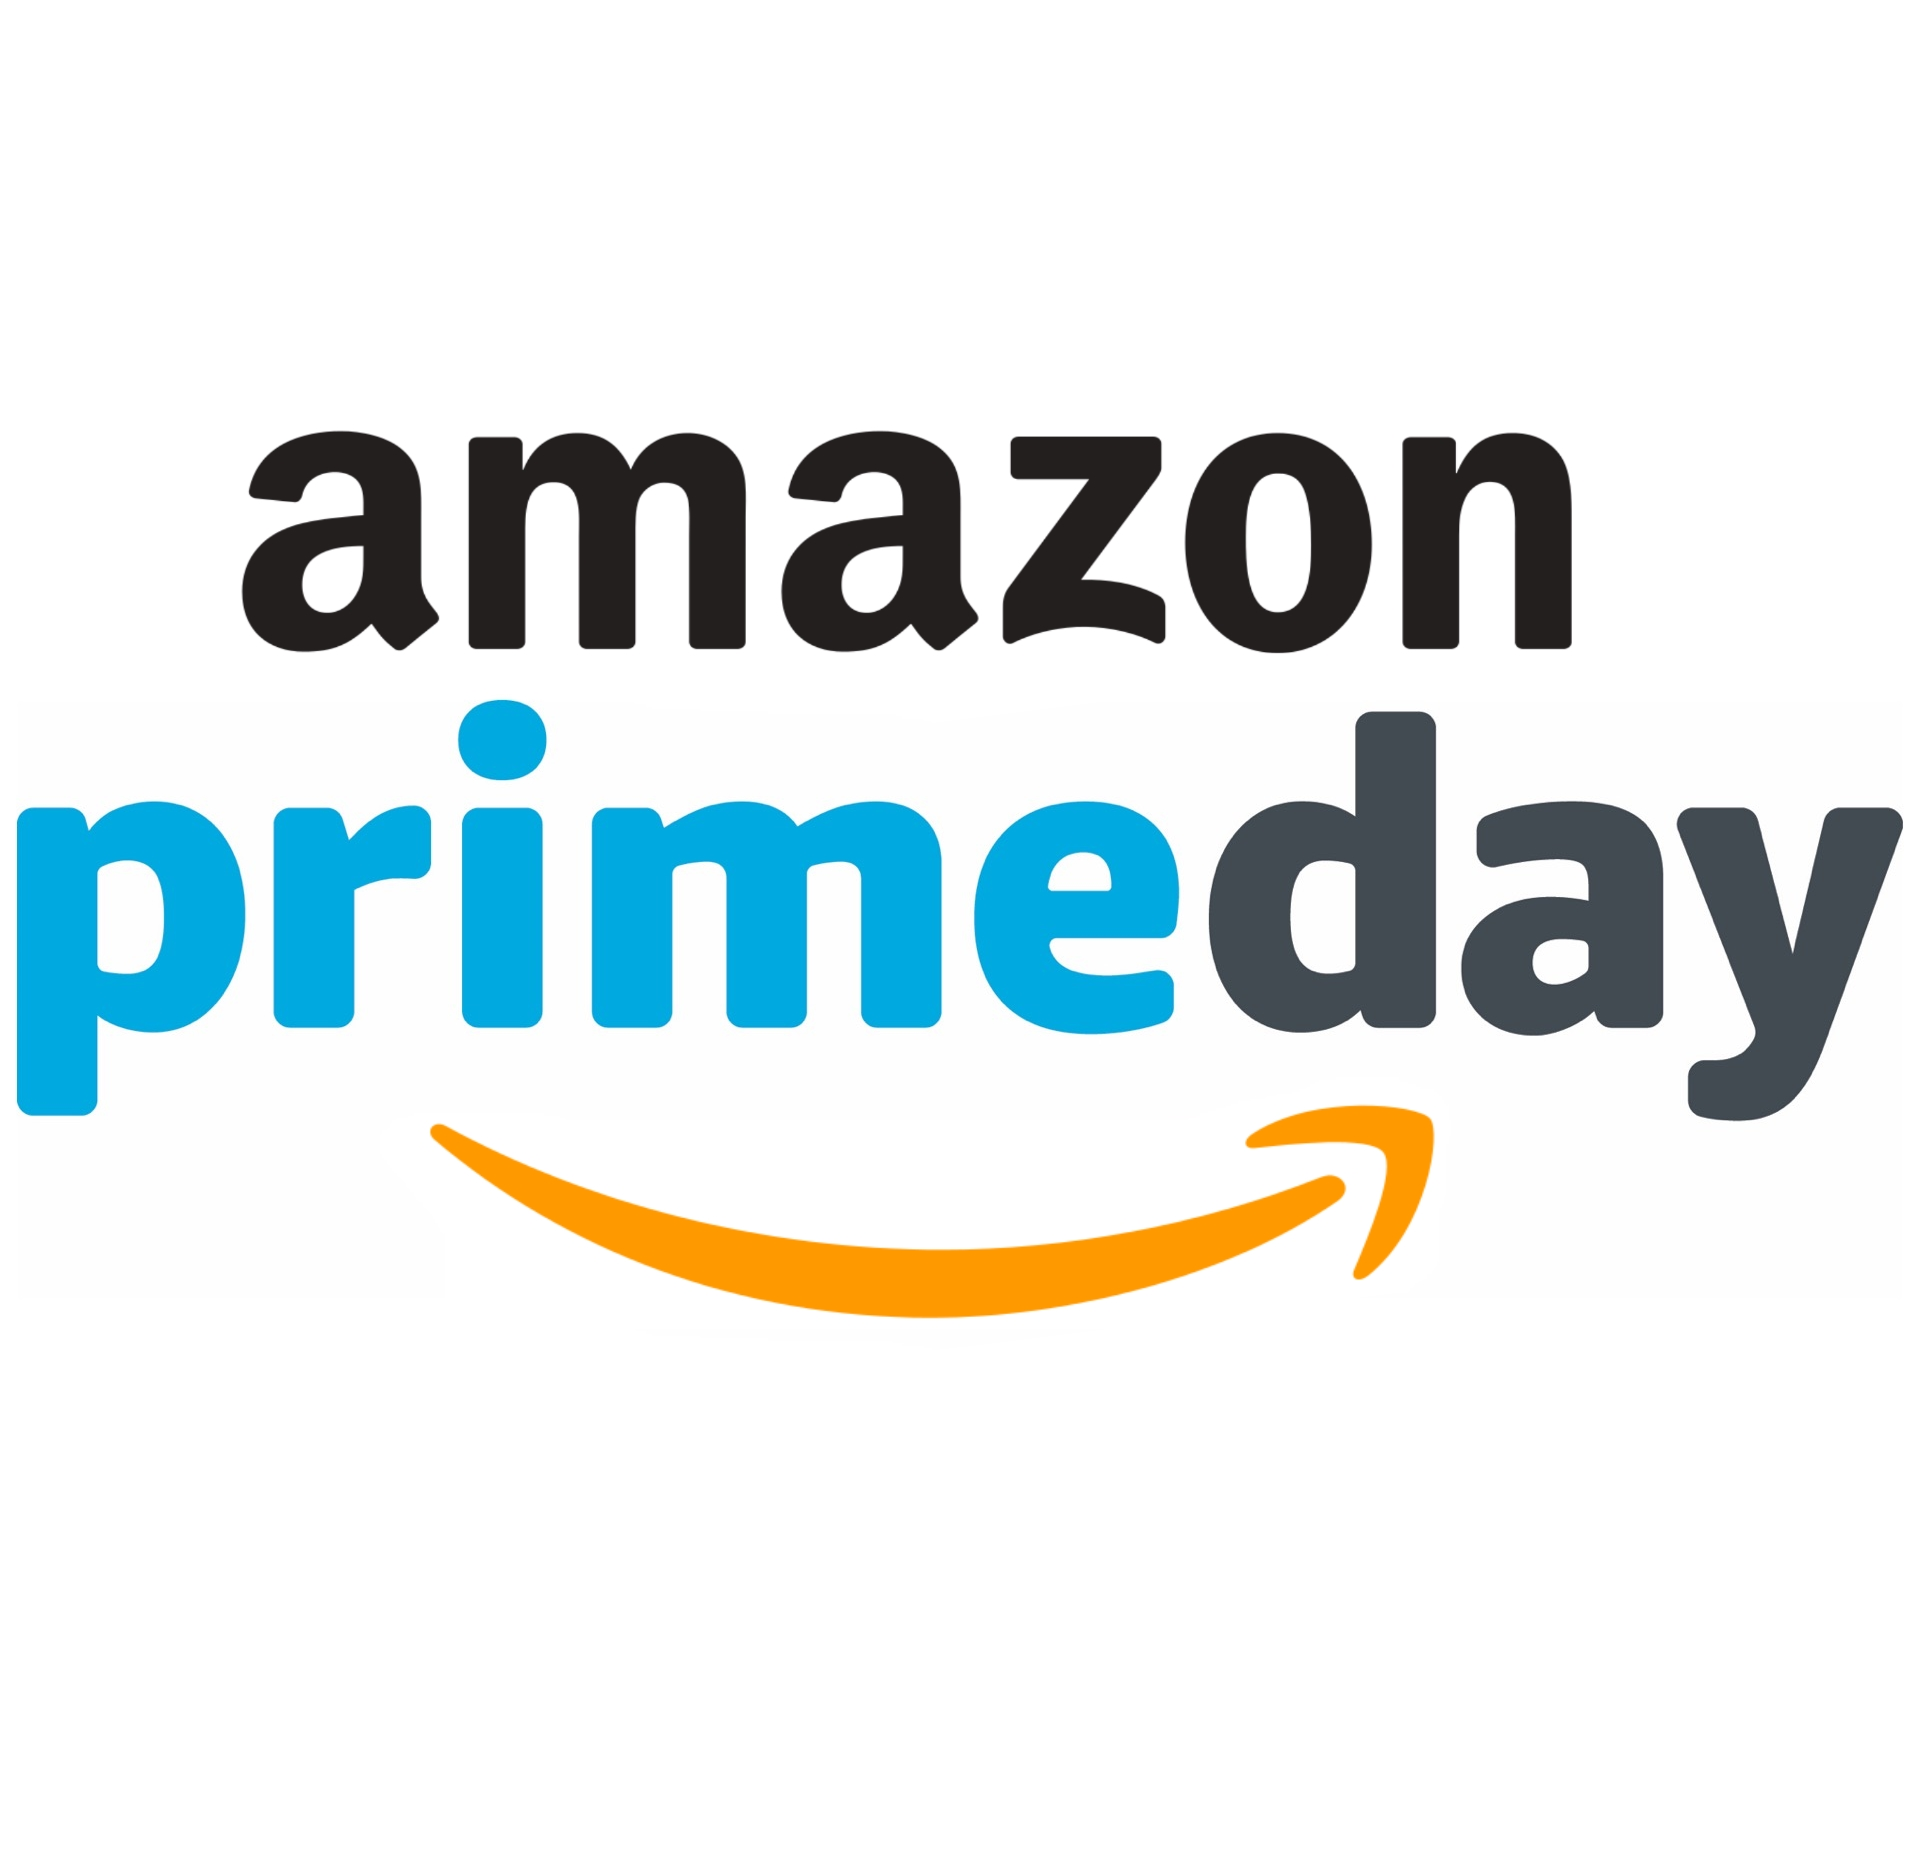 amazon prime day 2018 in the us here 39 s the date and deals preview predictions warpcom services. Black Bedroom Furniture Sets. Home Design Ideas